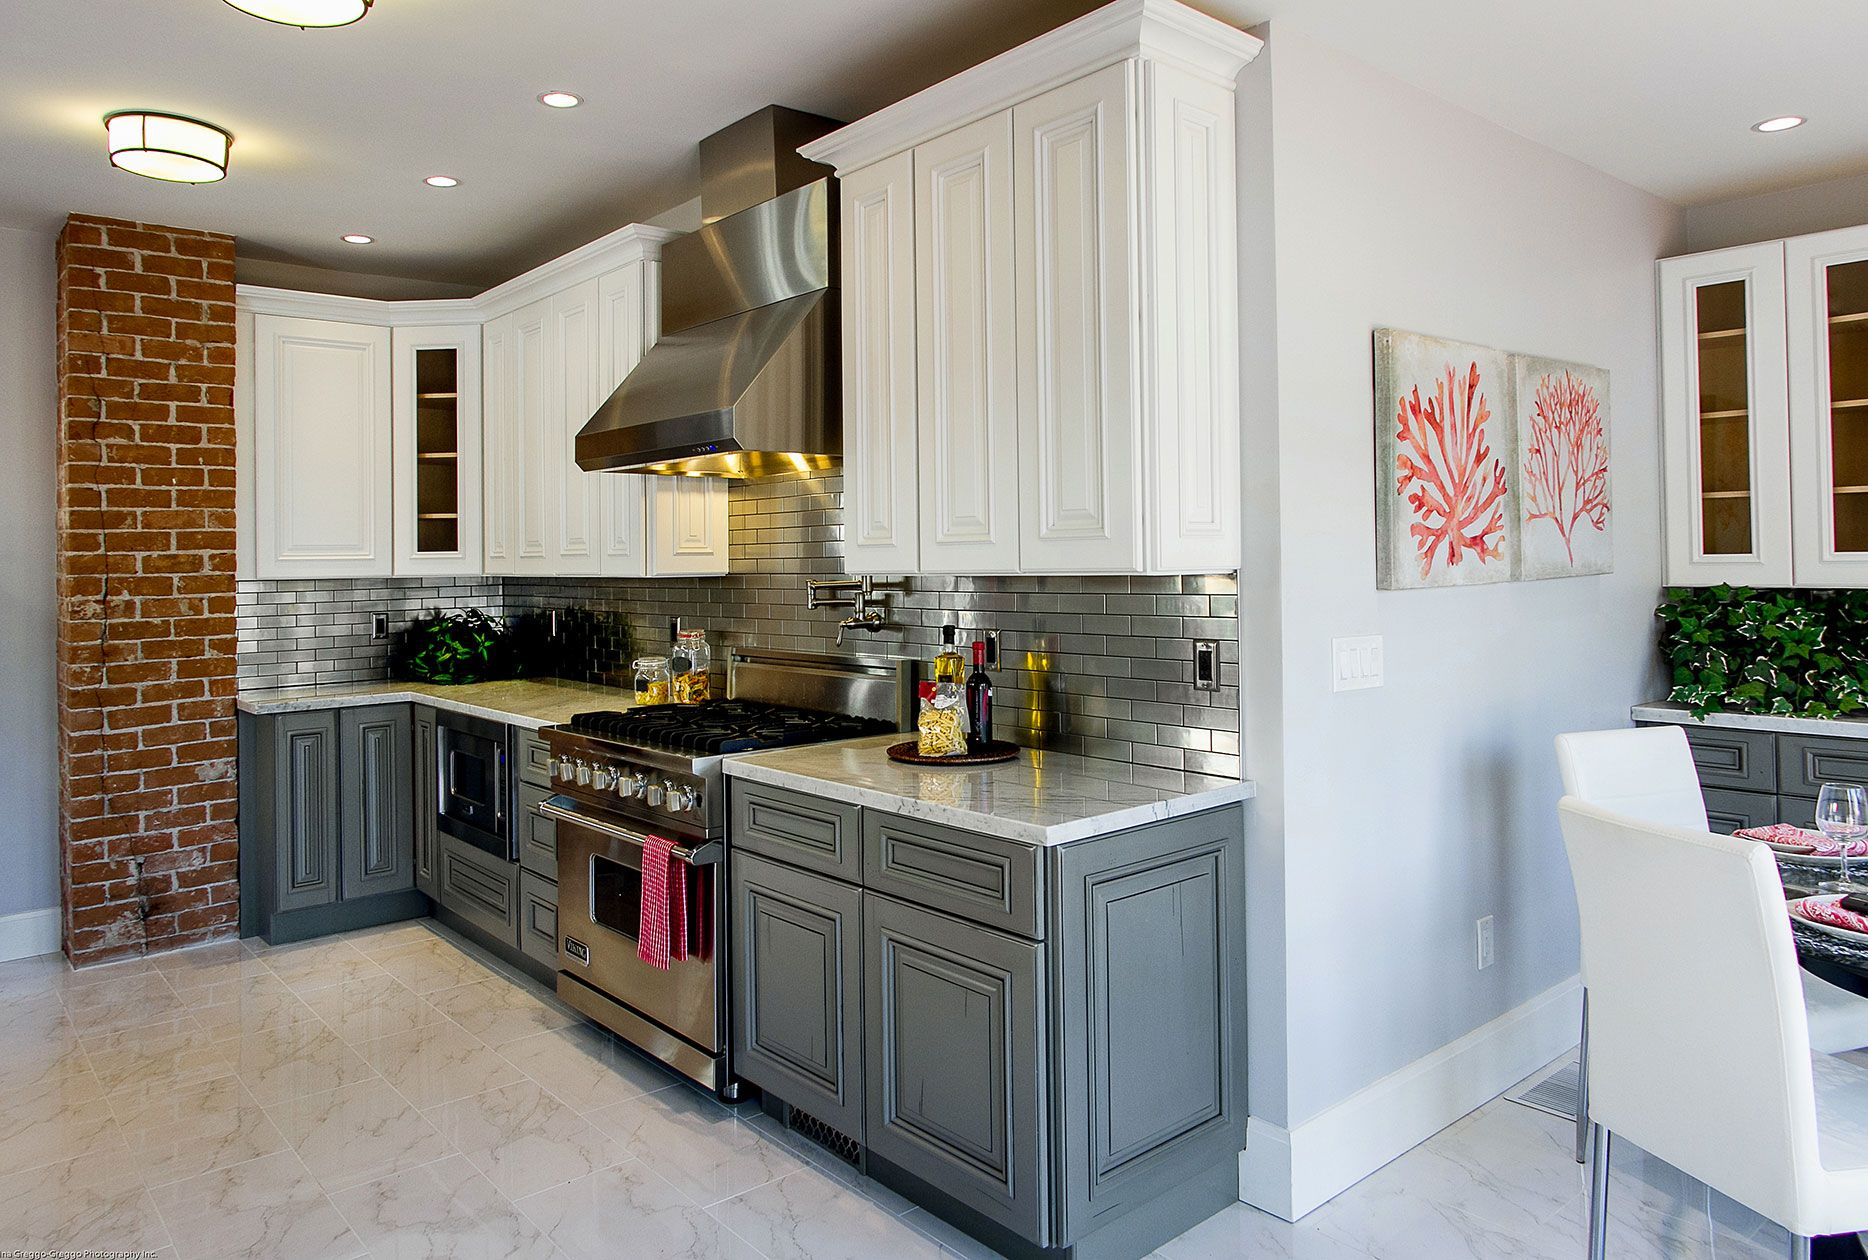 Pin On Dream Kitchens Sollid Envii